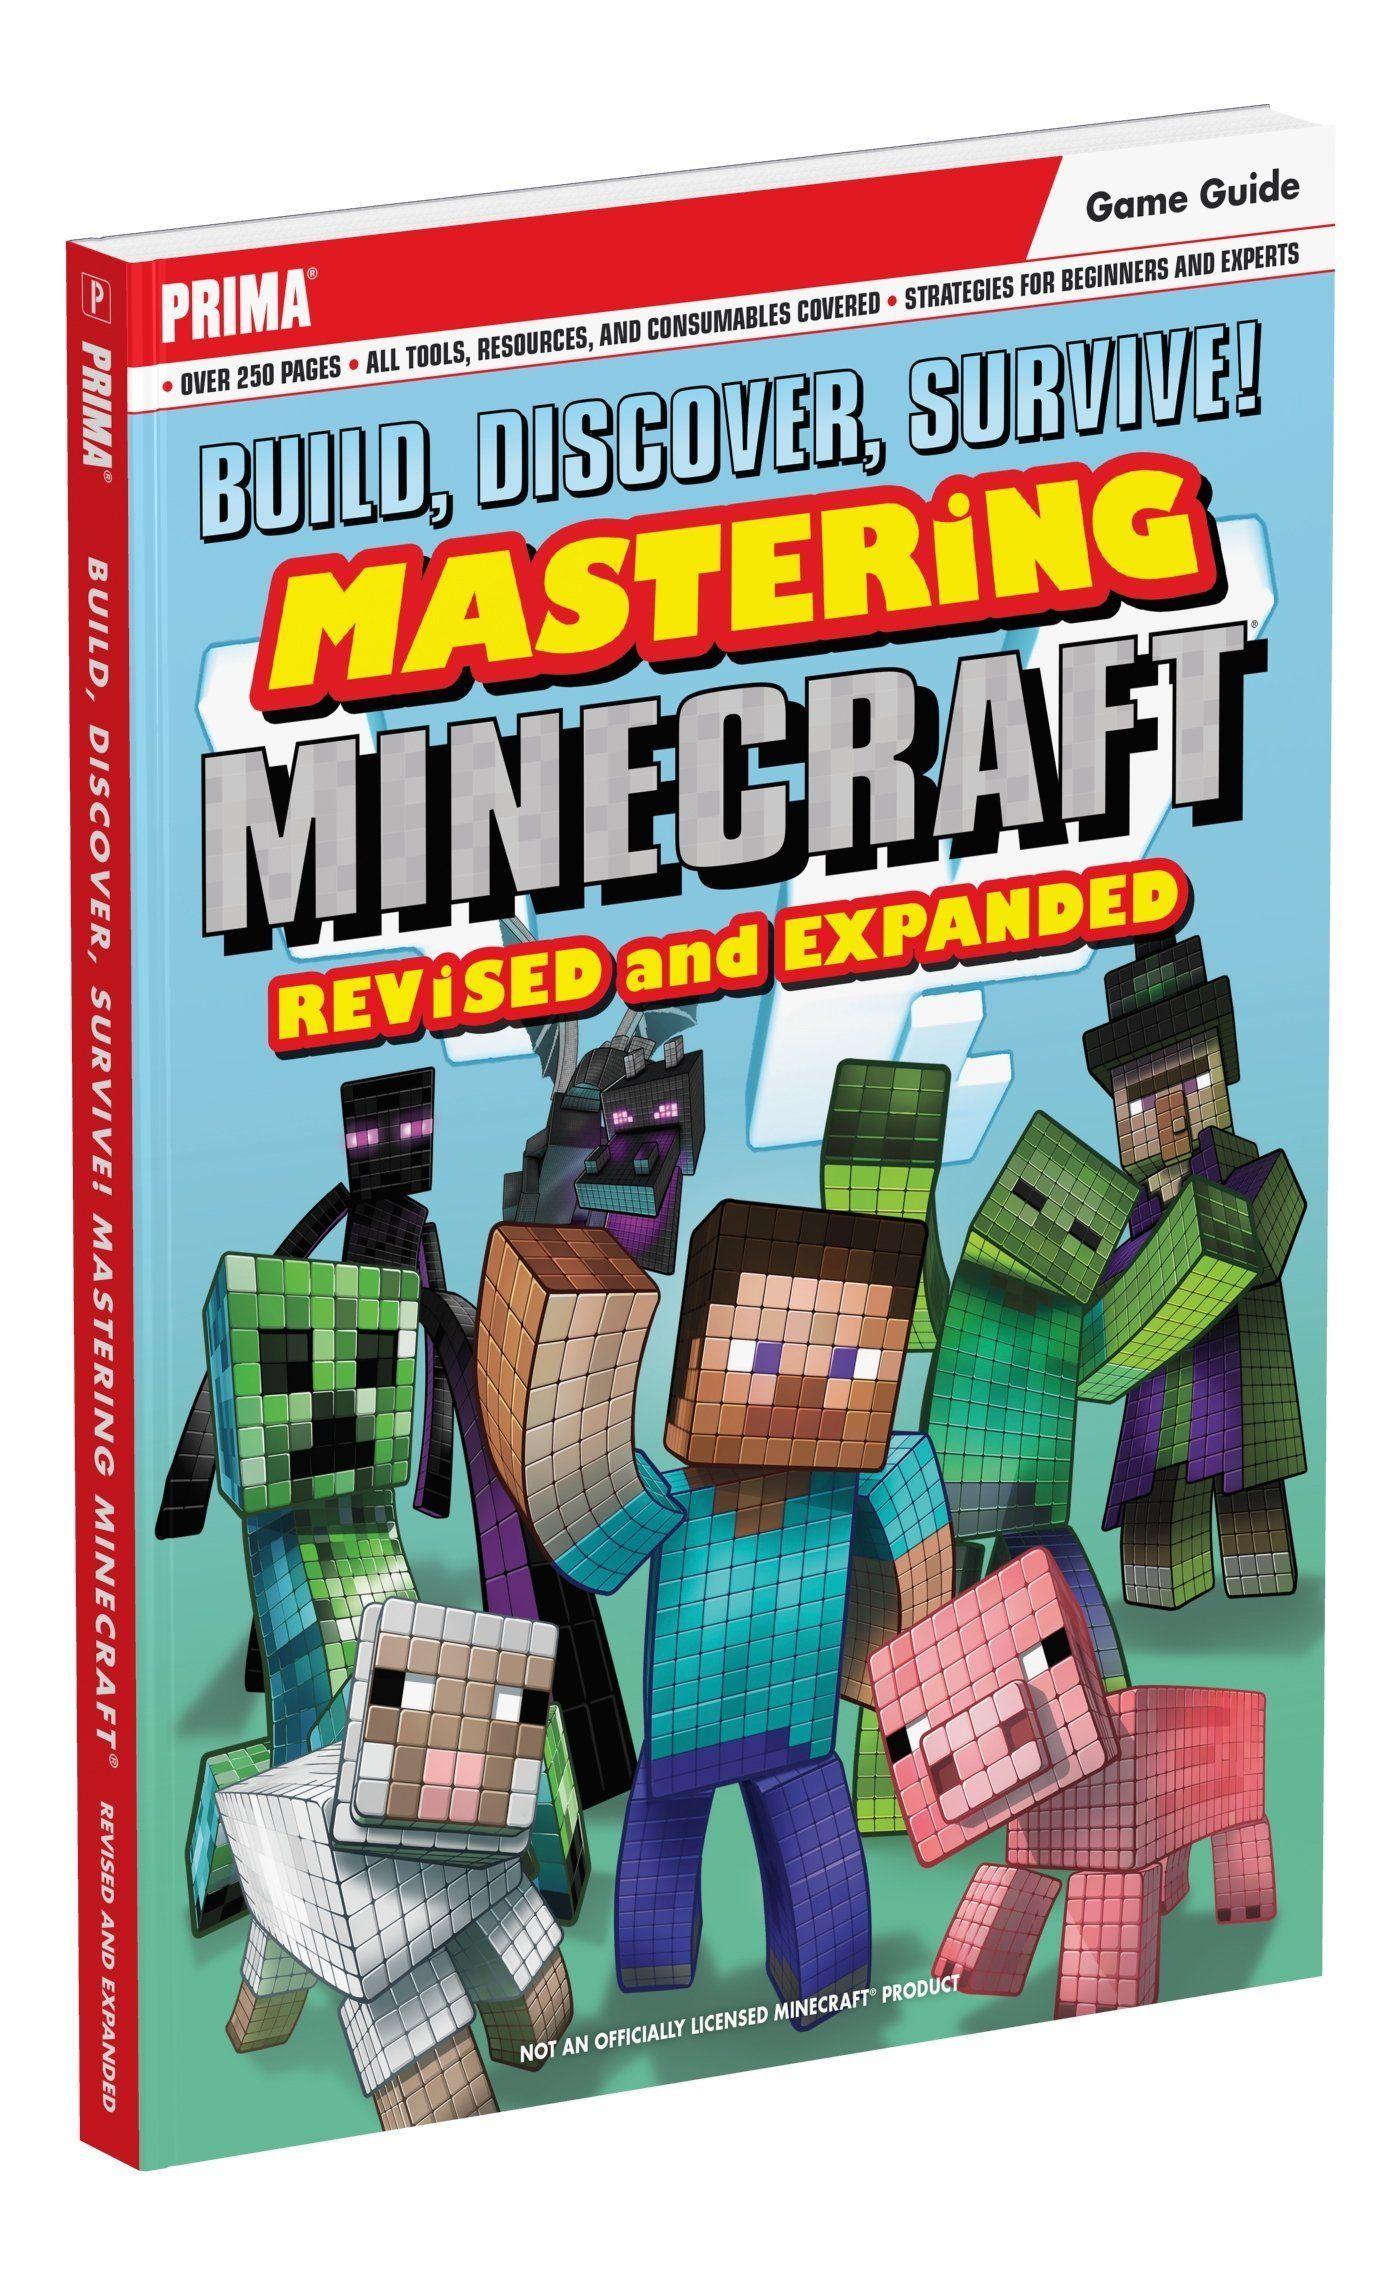 Build Discover Survive Mastering Minecraft Revised And